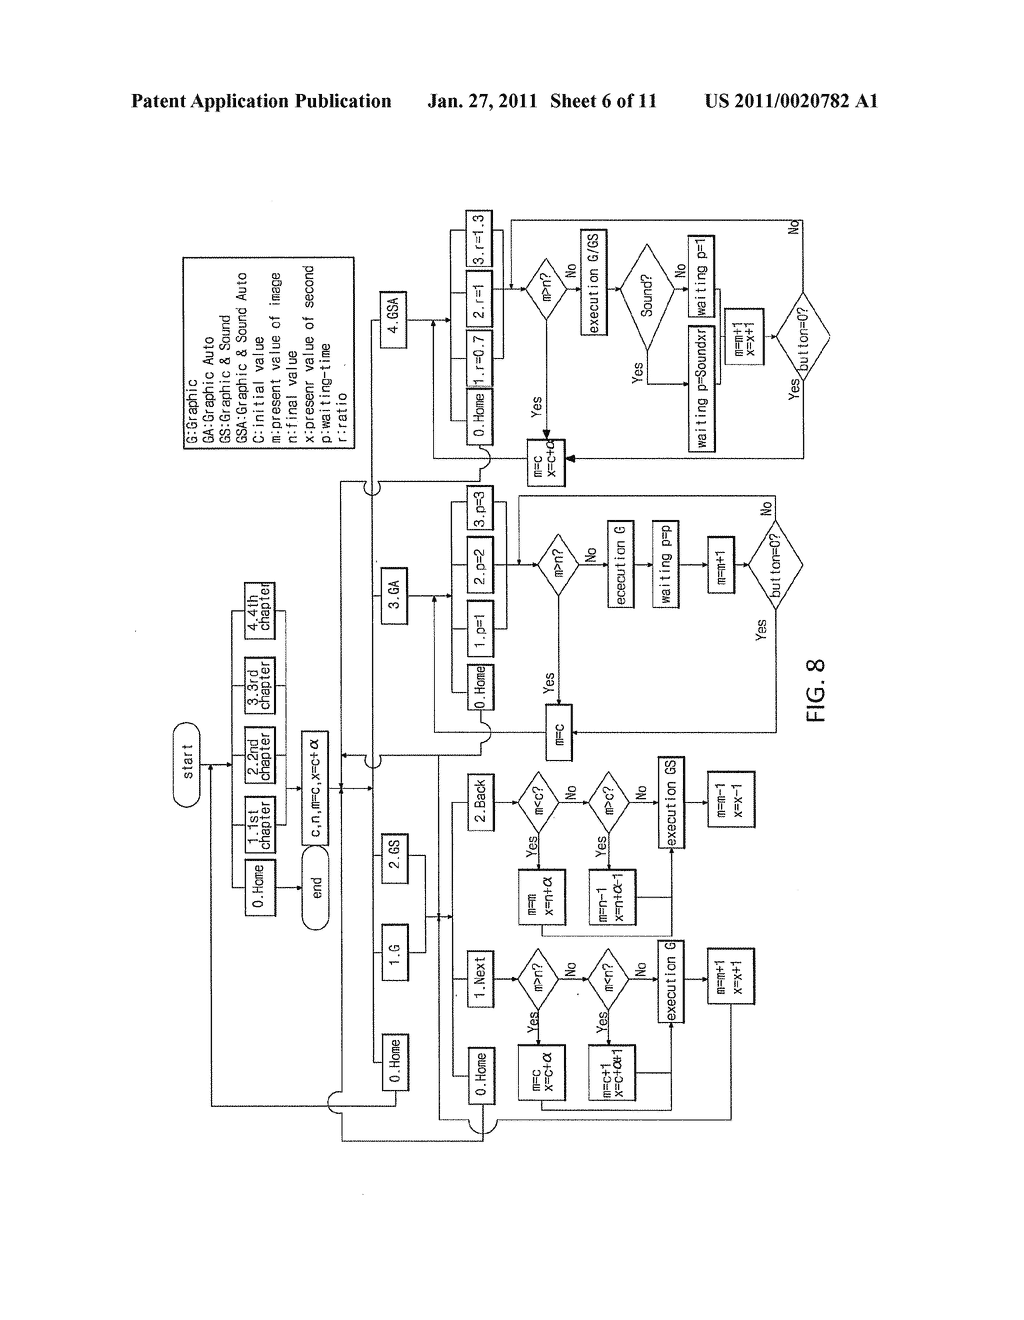 METHOD OF CONTROLLING COMPUTER PROGRAM AND SEARCHING FOLD AND FILE USING OBJECT-ORIENTED BUTTON, CONTROL AND PRESENTATION SYSTEM USING THE SAME AND REMOTE CONTROLLER USING THE SAME - diagram, schematic, and image 07